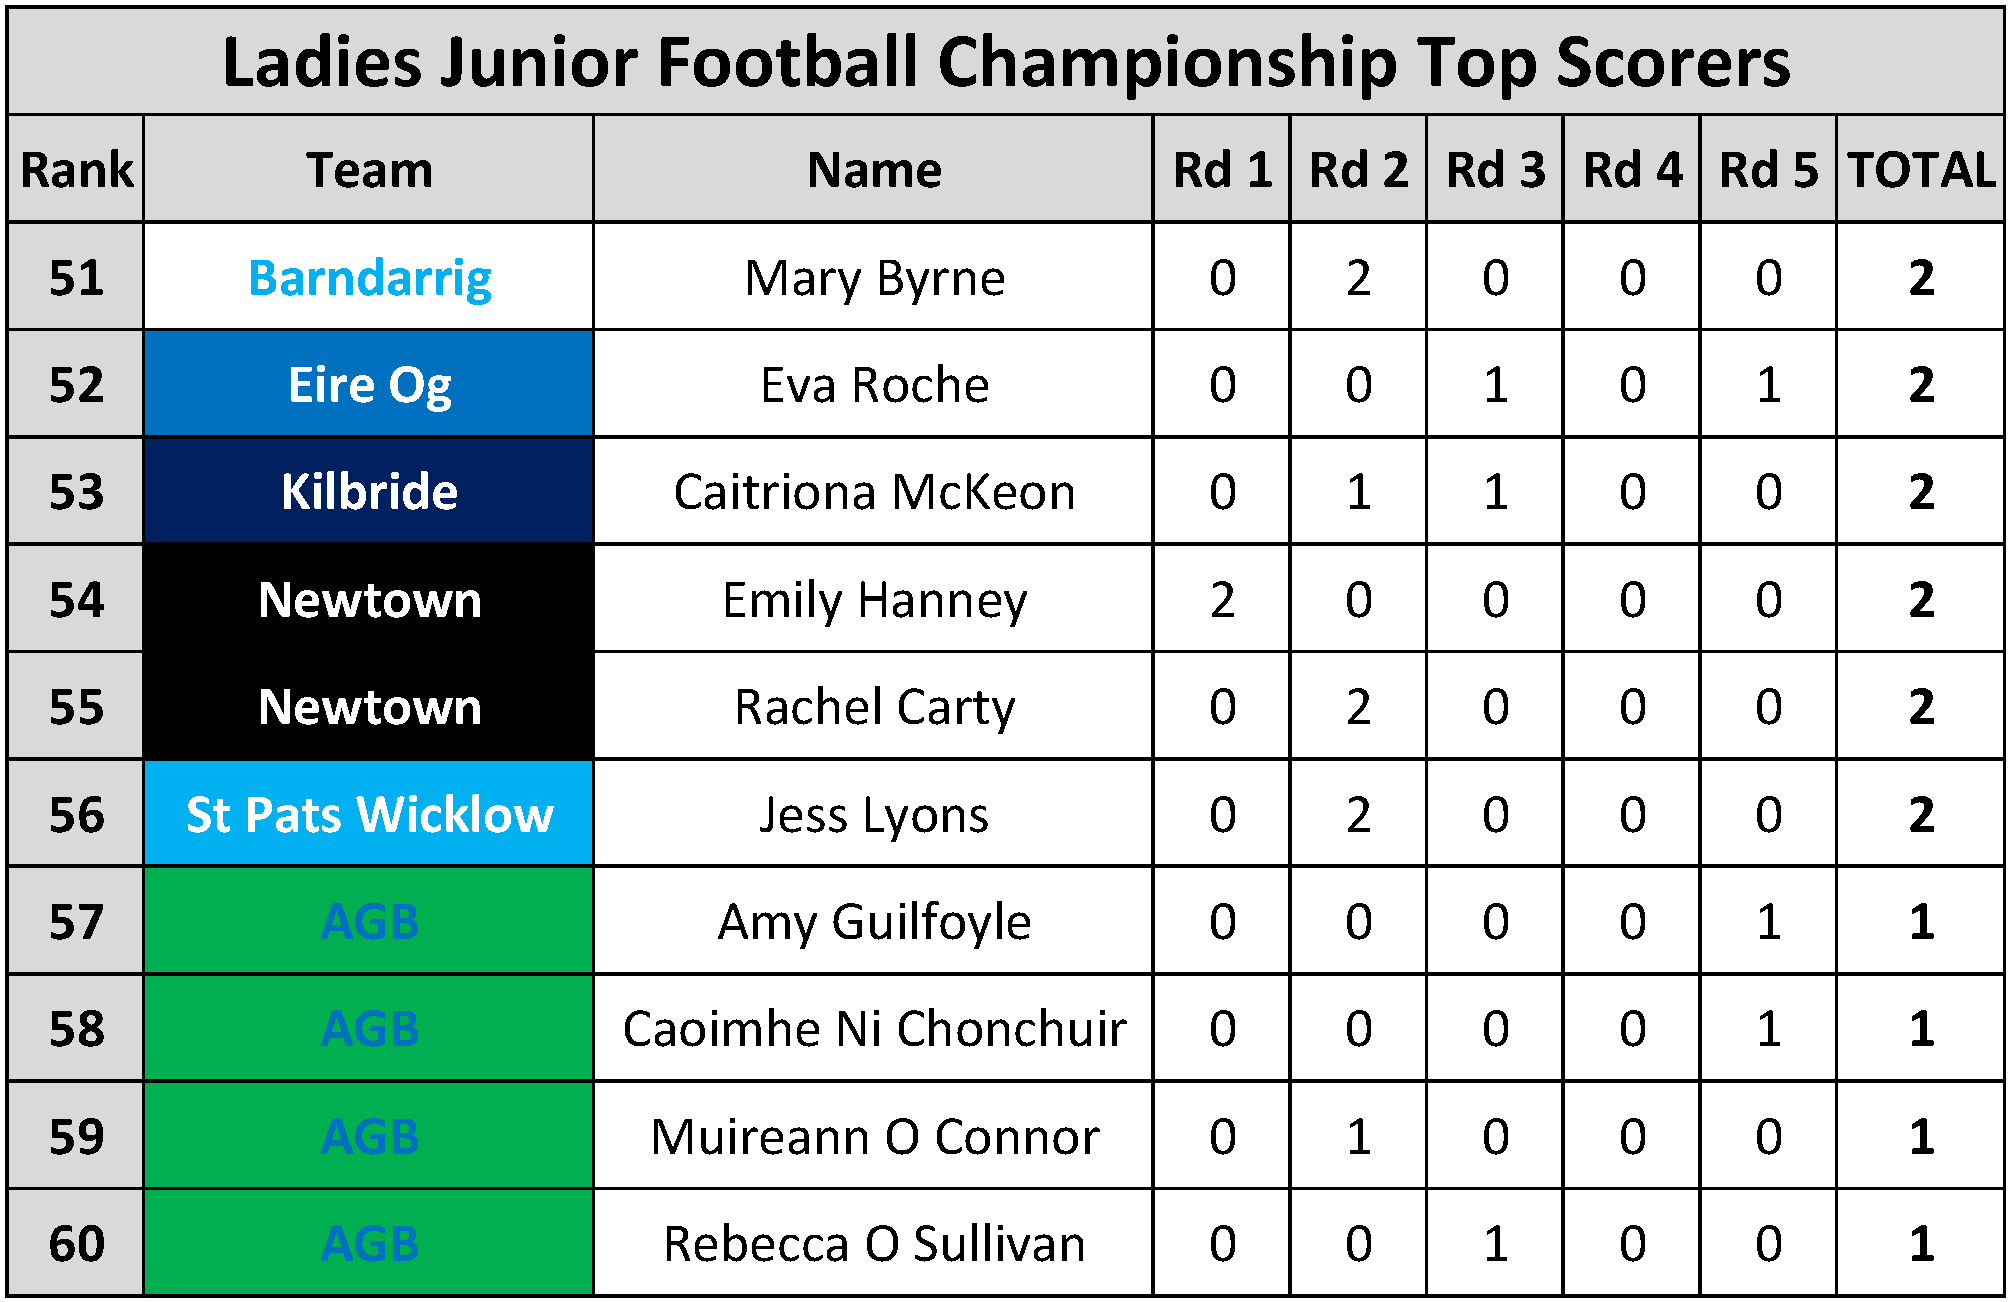 Top Scorers_Page_107